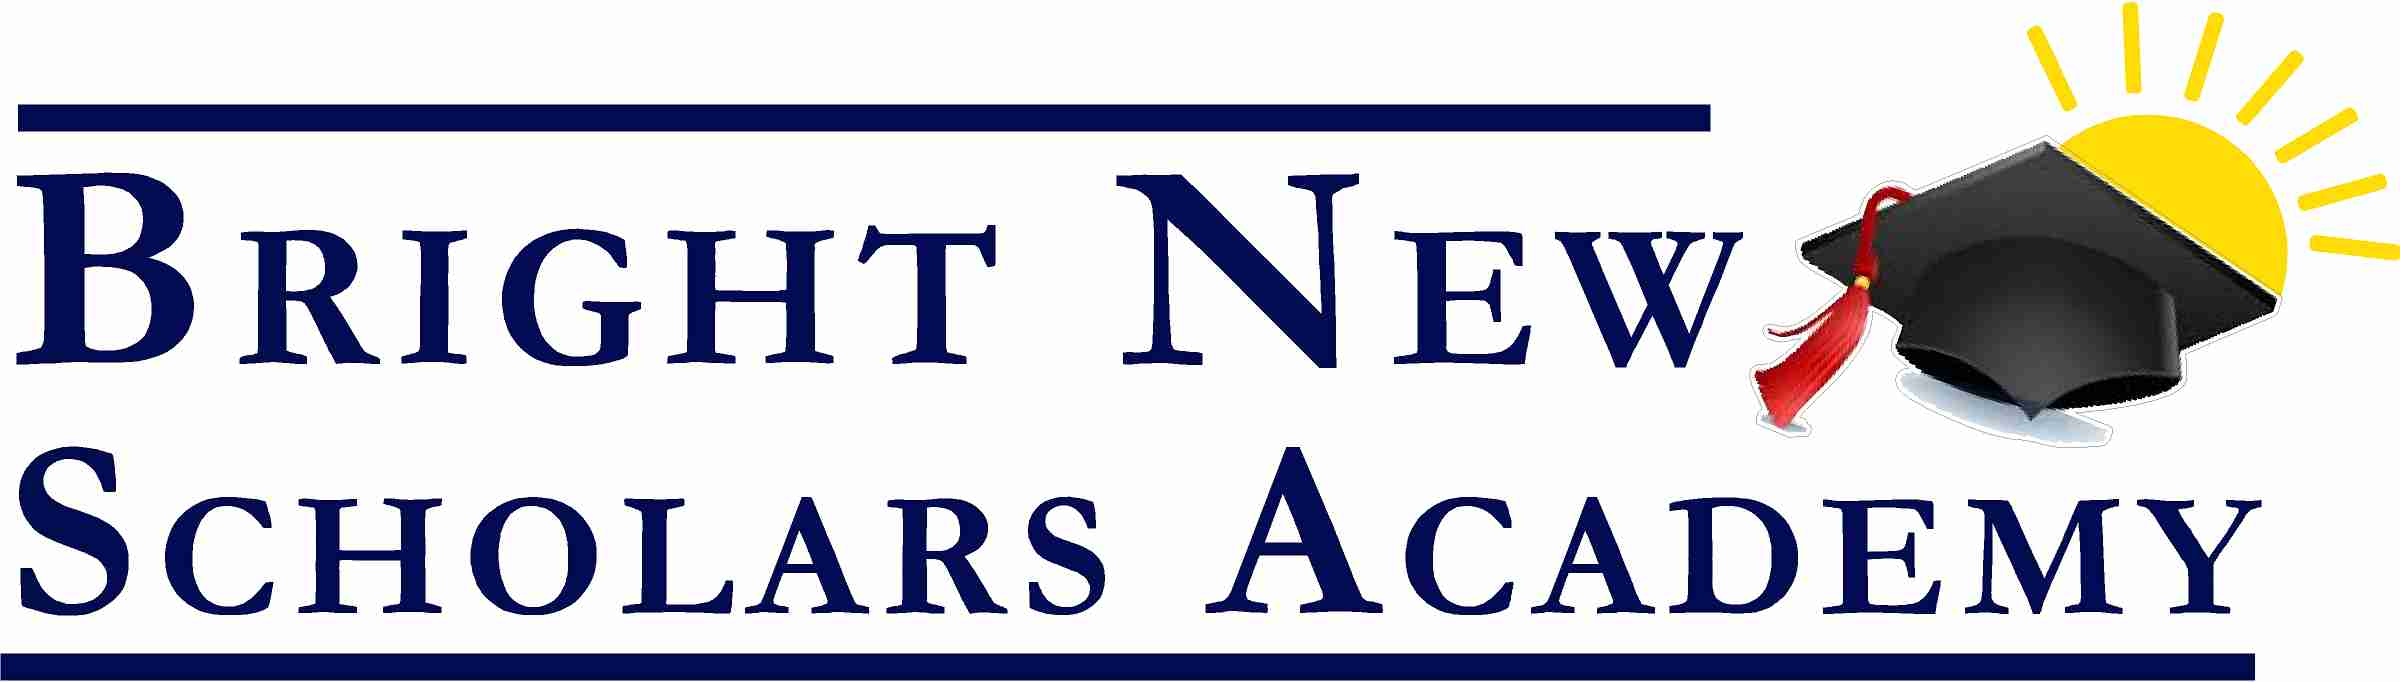 Bright New Scholars Academy